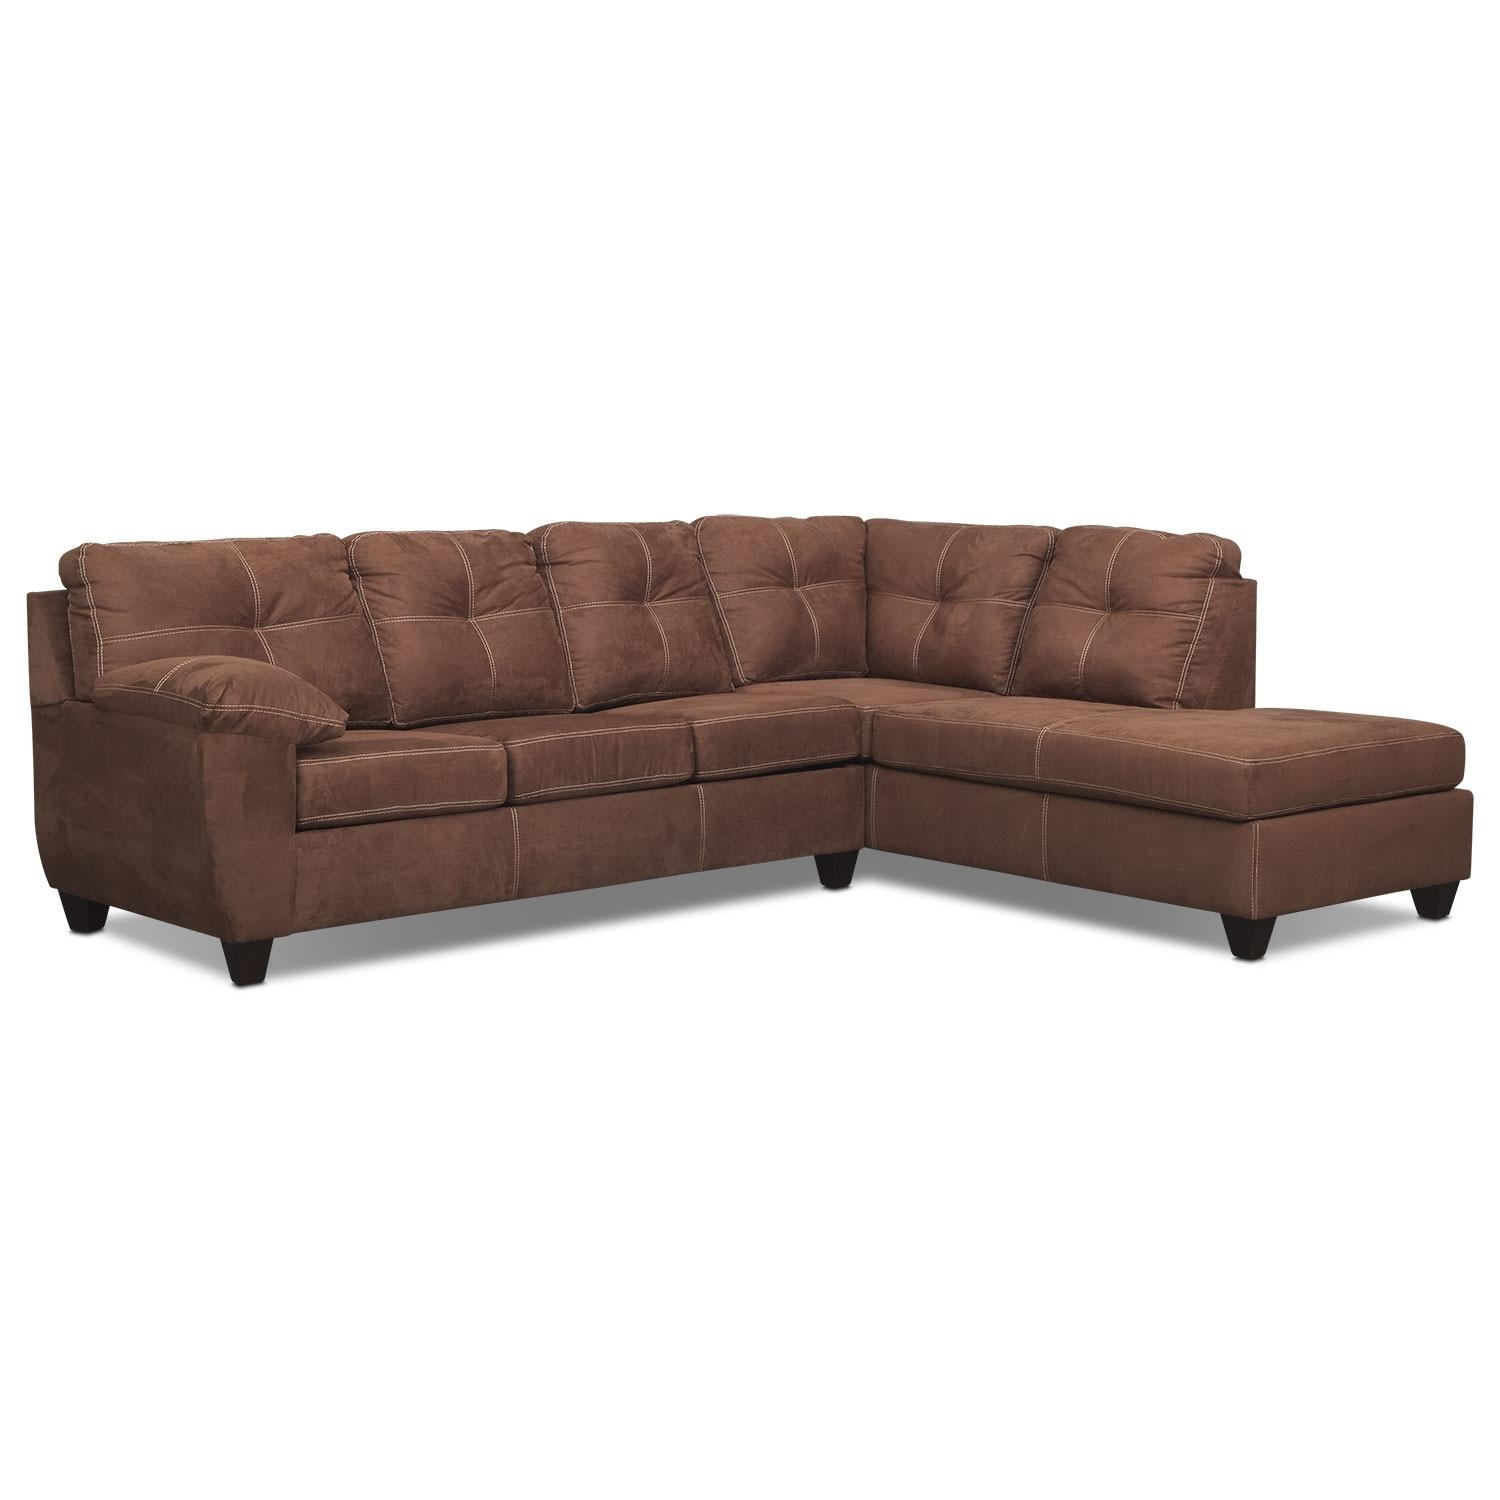 Sleeper Sofas | Value City Furniture | Value City Furniture Regarding Sleeper Sectional Sofas (Image 14 of 20)